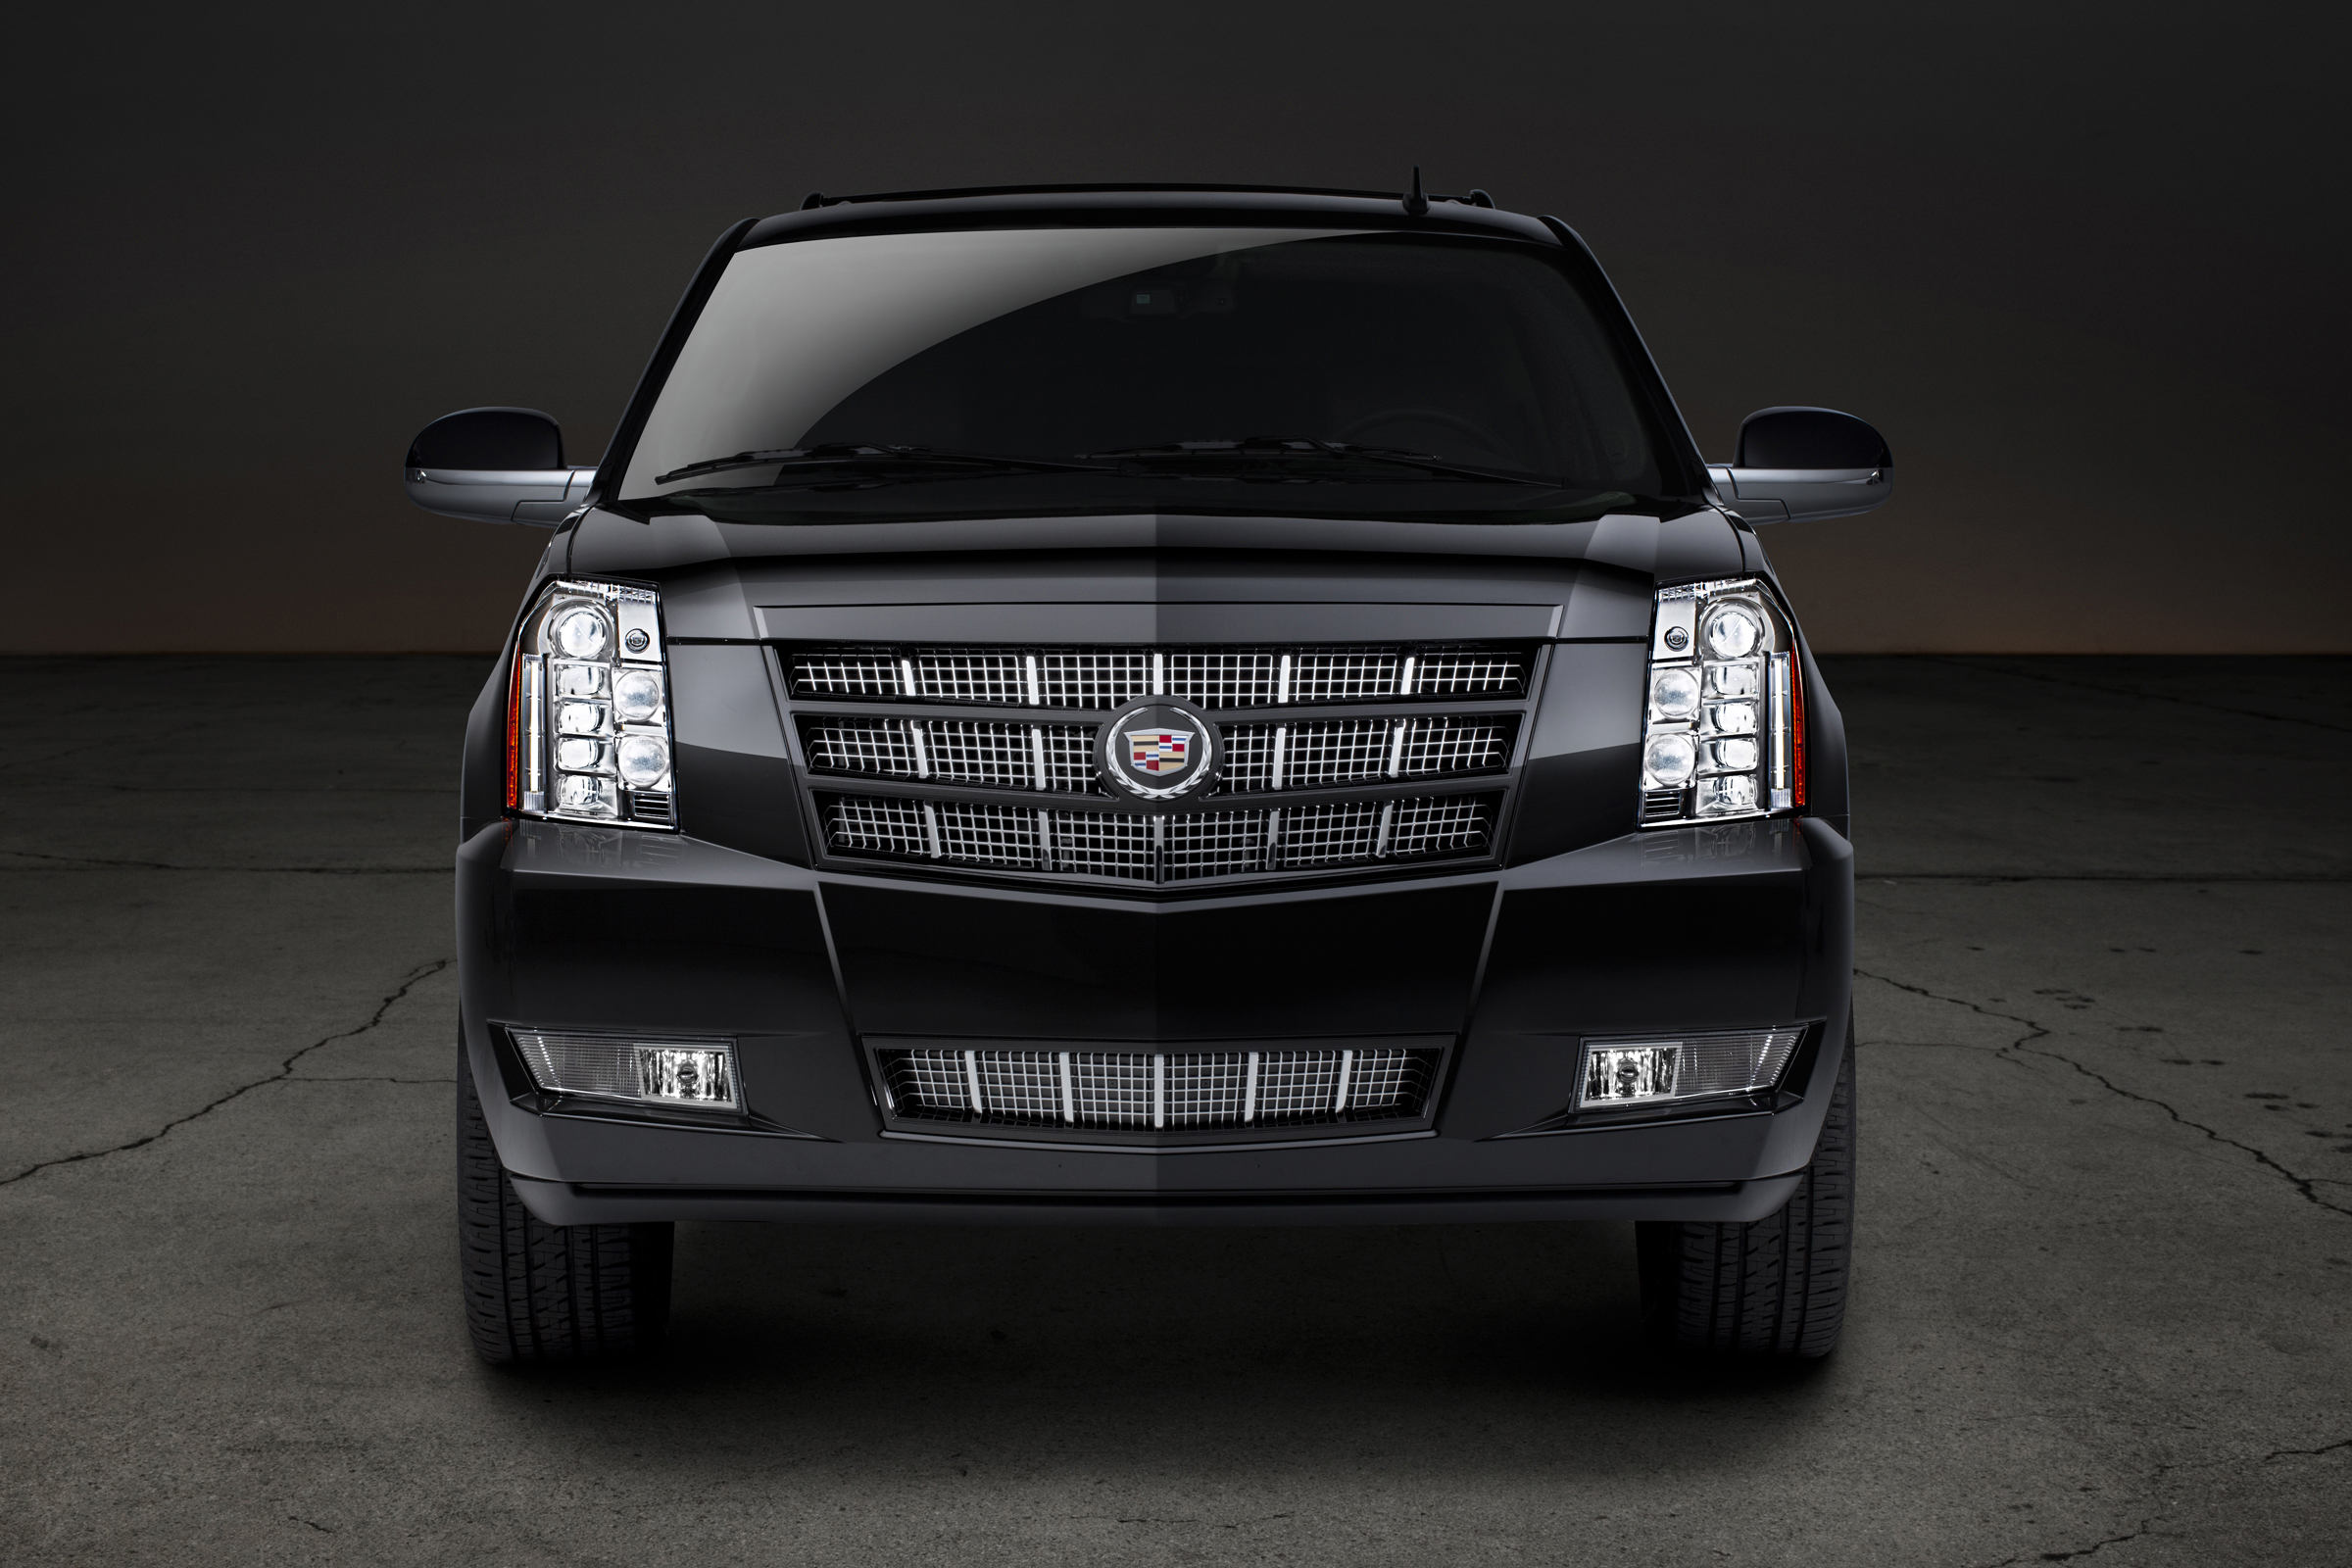 kb escalade file resolution exterior size type cadillac base link suv hybrid partsopen